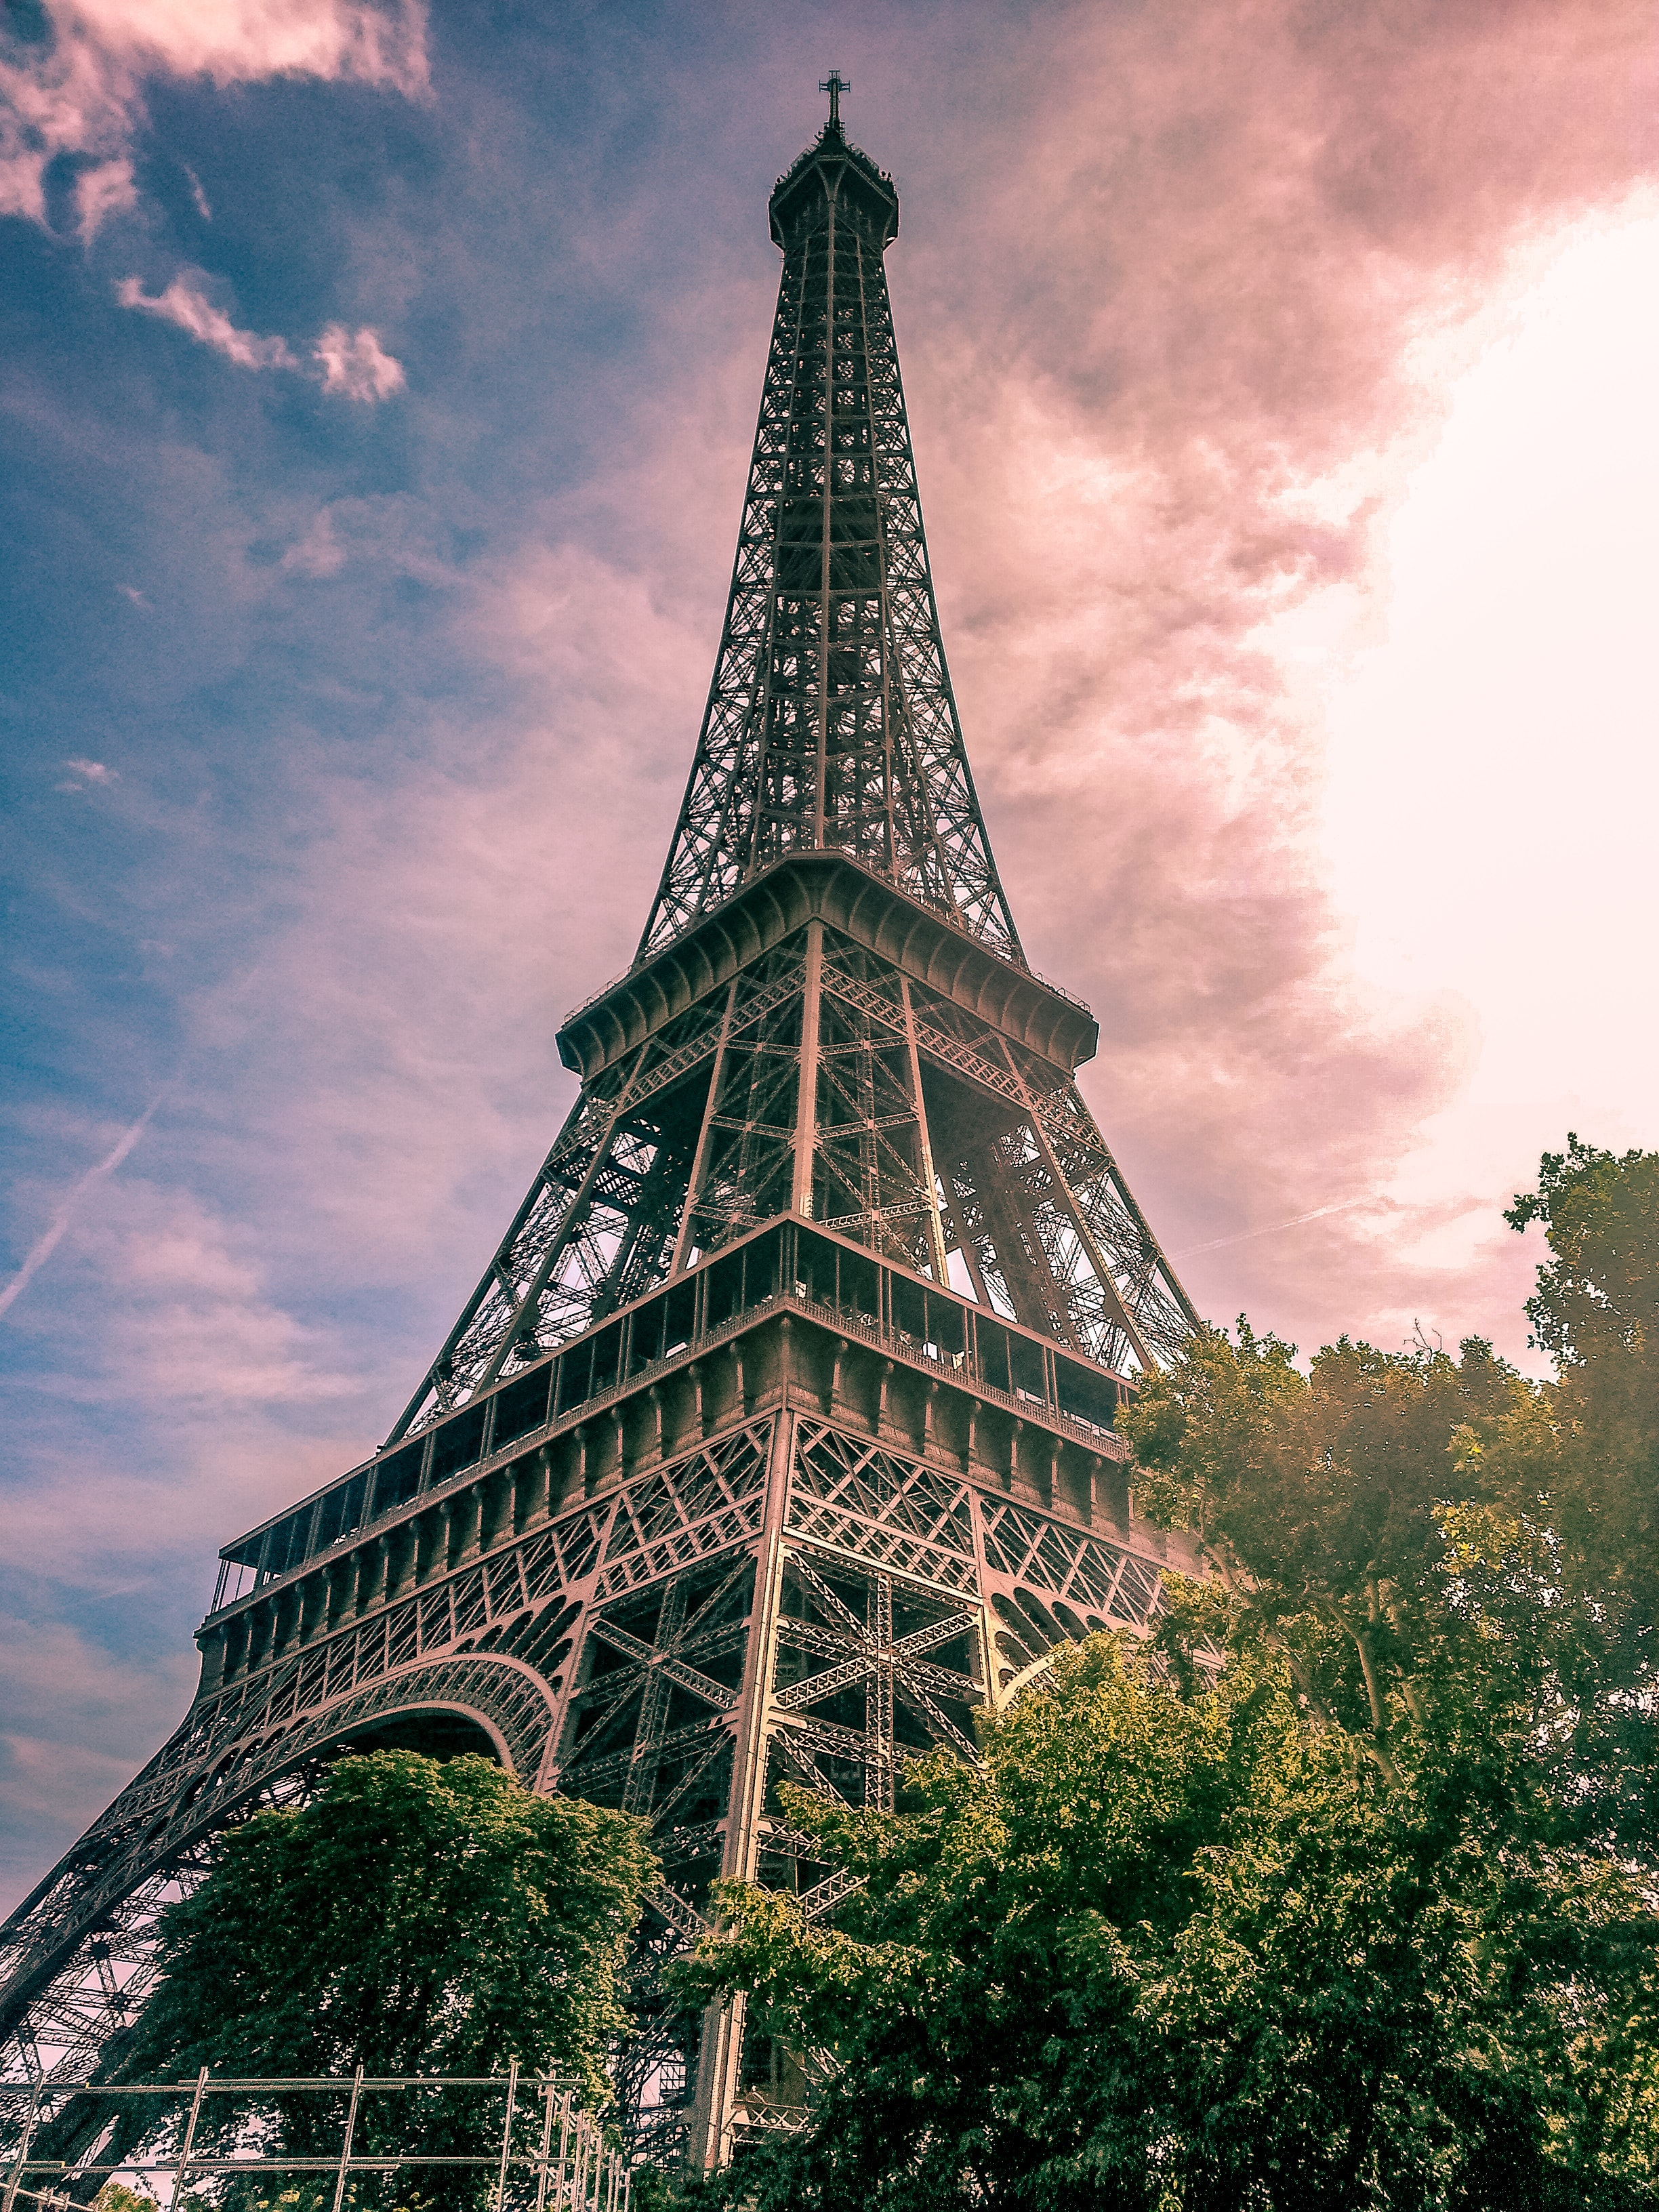 100 Great France Photos 183 Pexels 183 Free Stock Photos